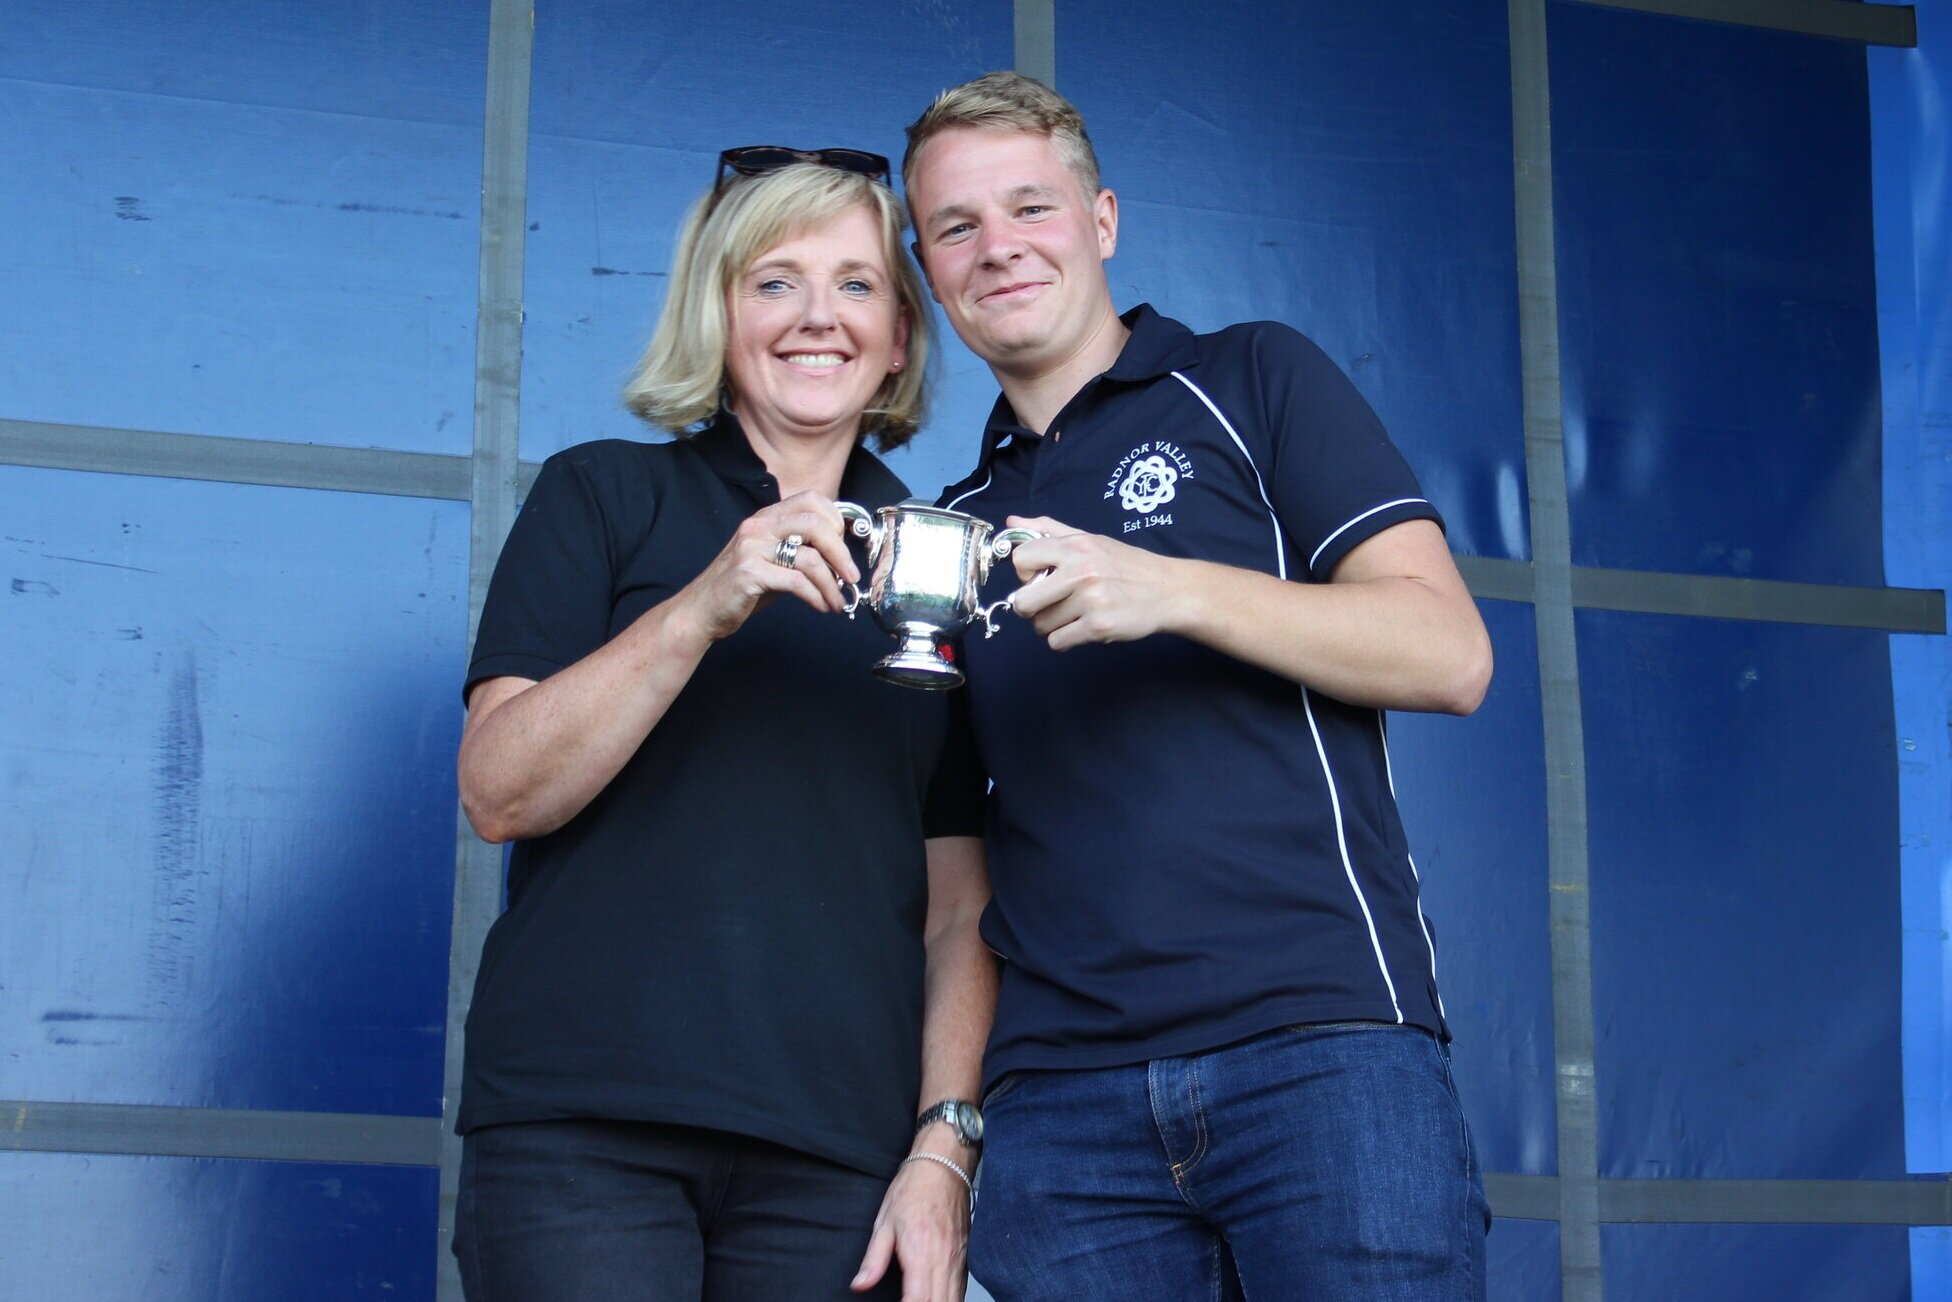 Louise Pugh presenting Club Chairman of Radnor Valley YFC with the 'Hector Morris Challenge Cup' for th most marks gained in the Home Crafts section.